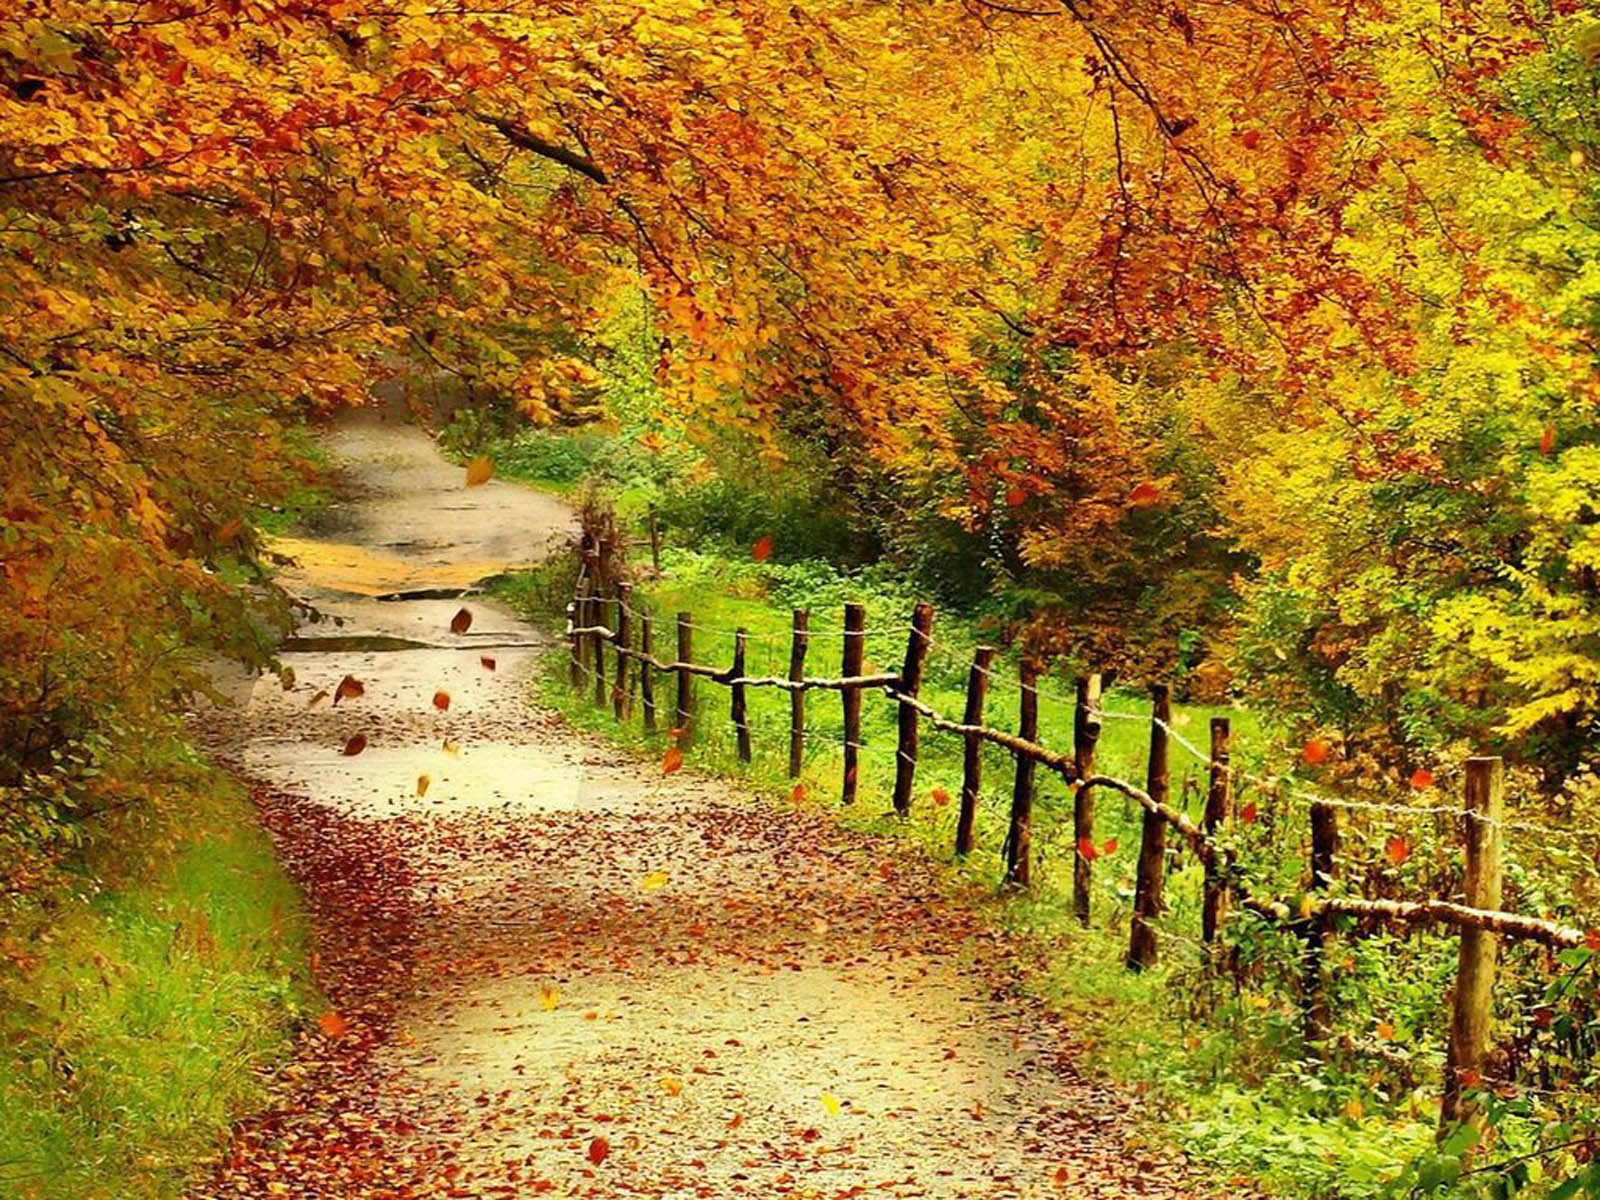 wallpapers: beautiful autumn scenery wallpapers